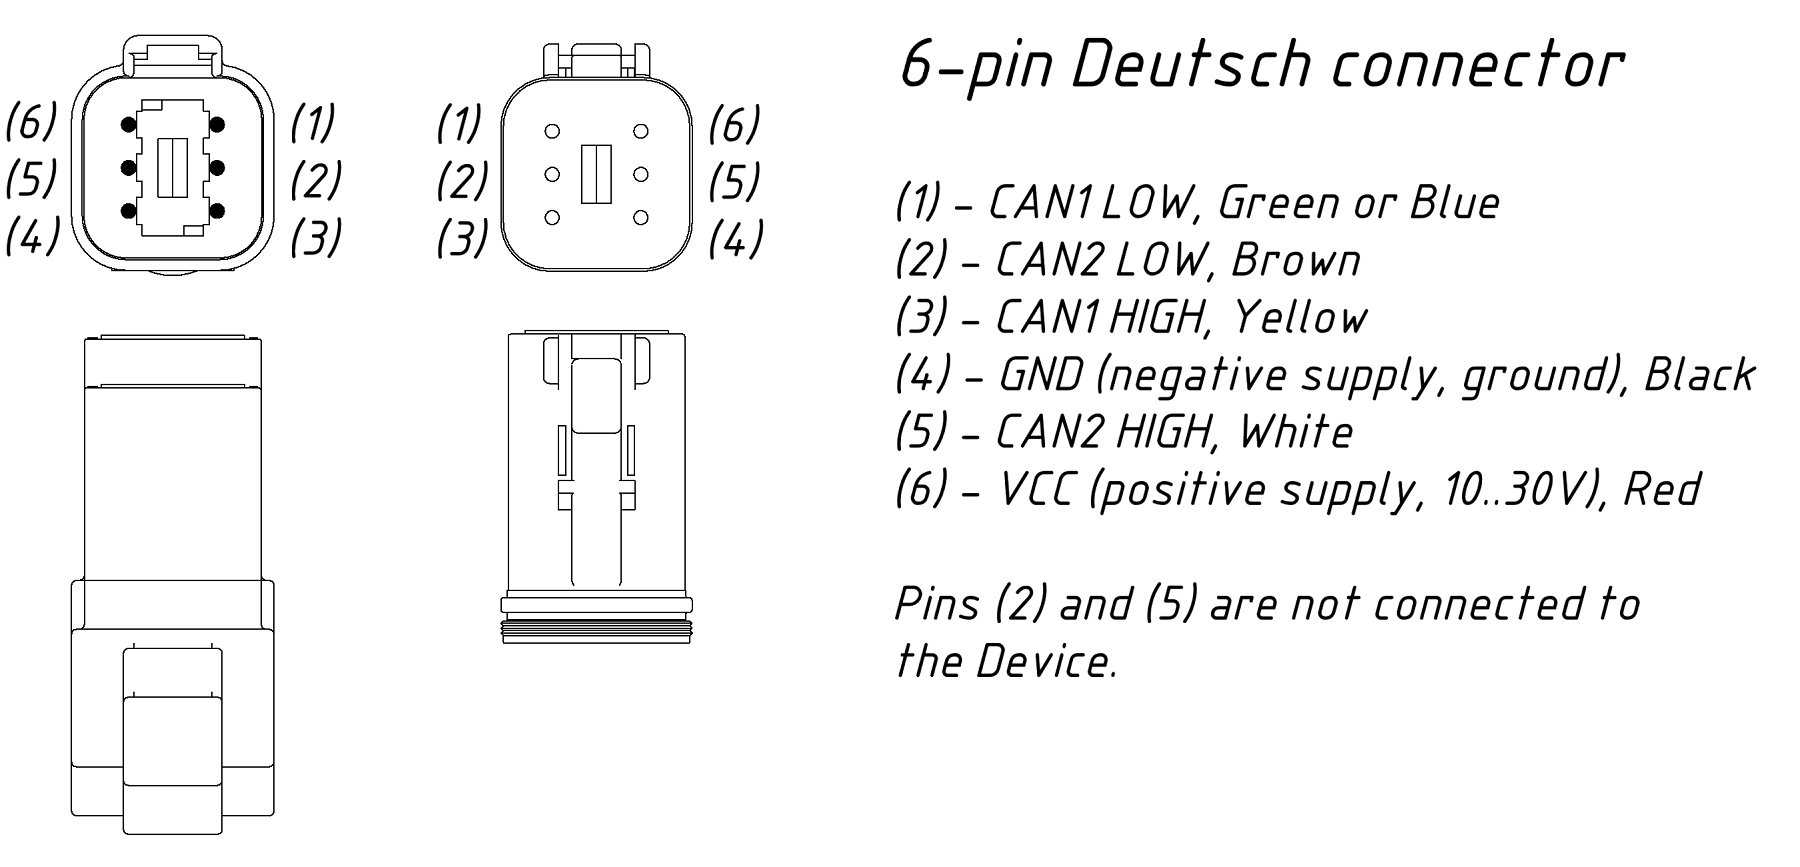 Crusader 20 pin CAN harness diagram needed for J1939 - The ... on